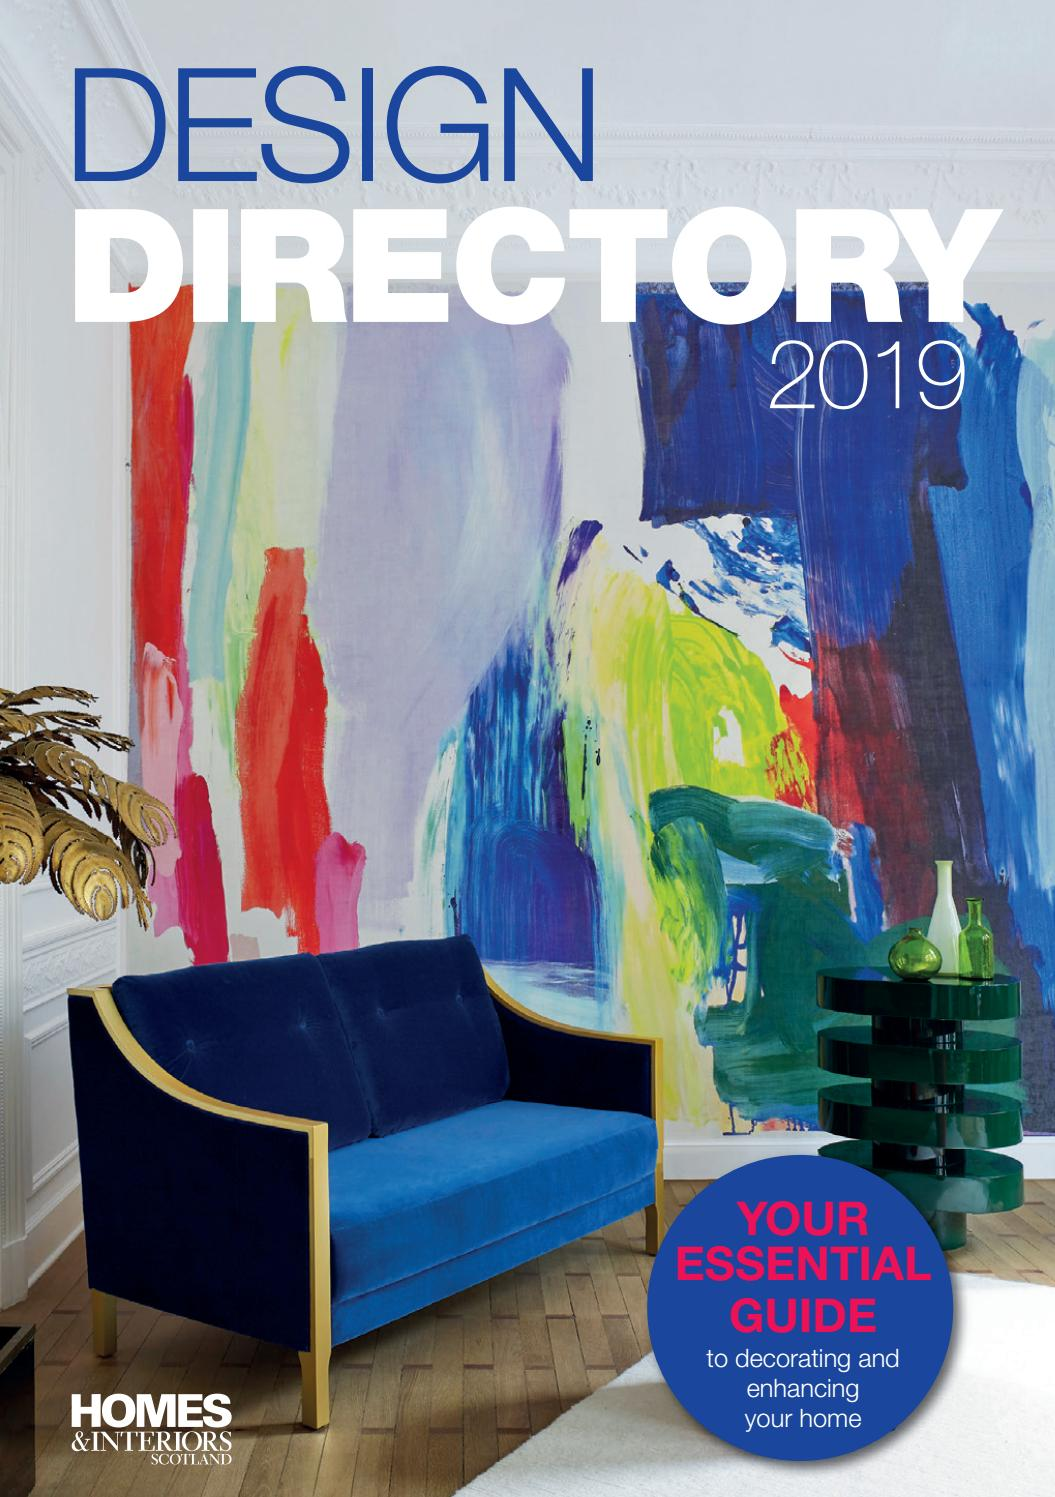 Design directory 2019 by peebles media group issuu